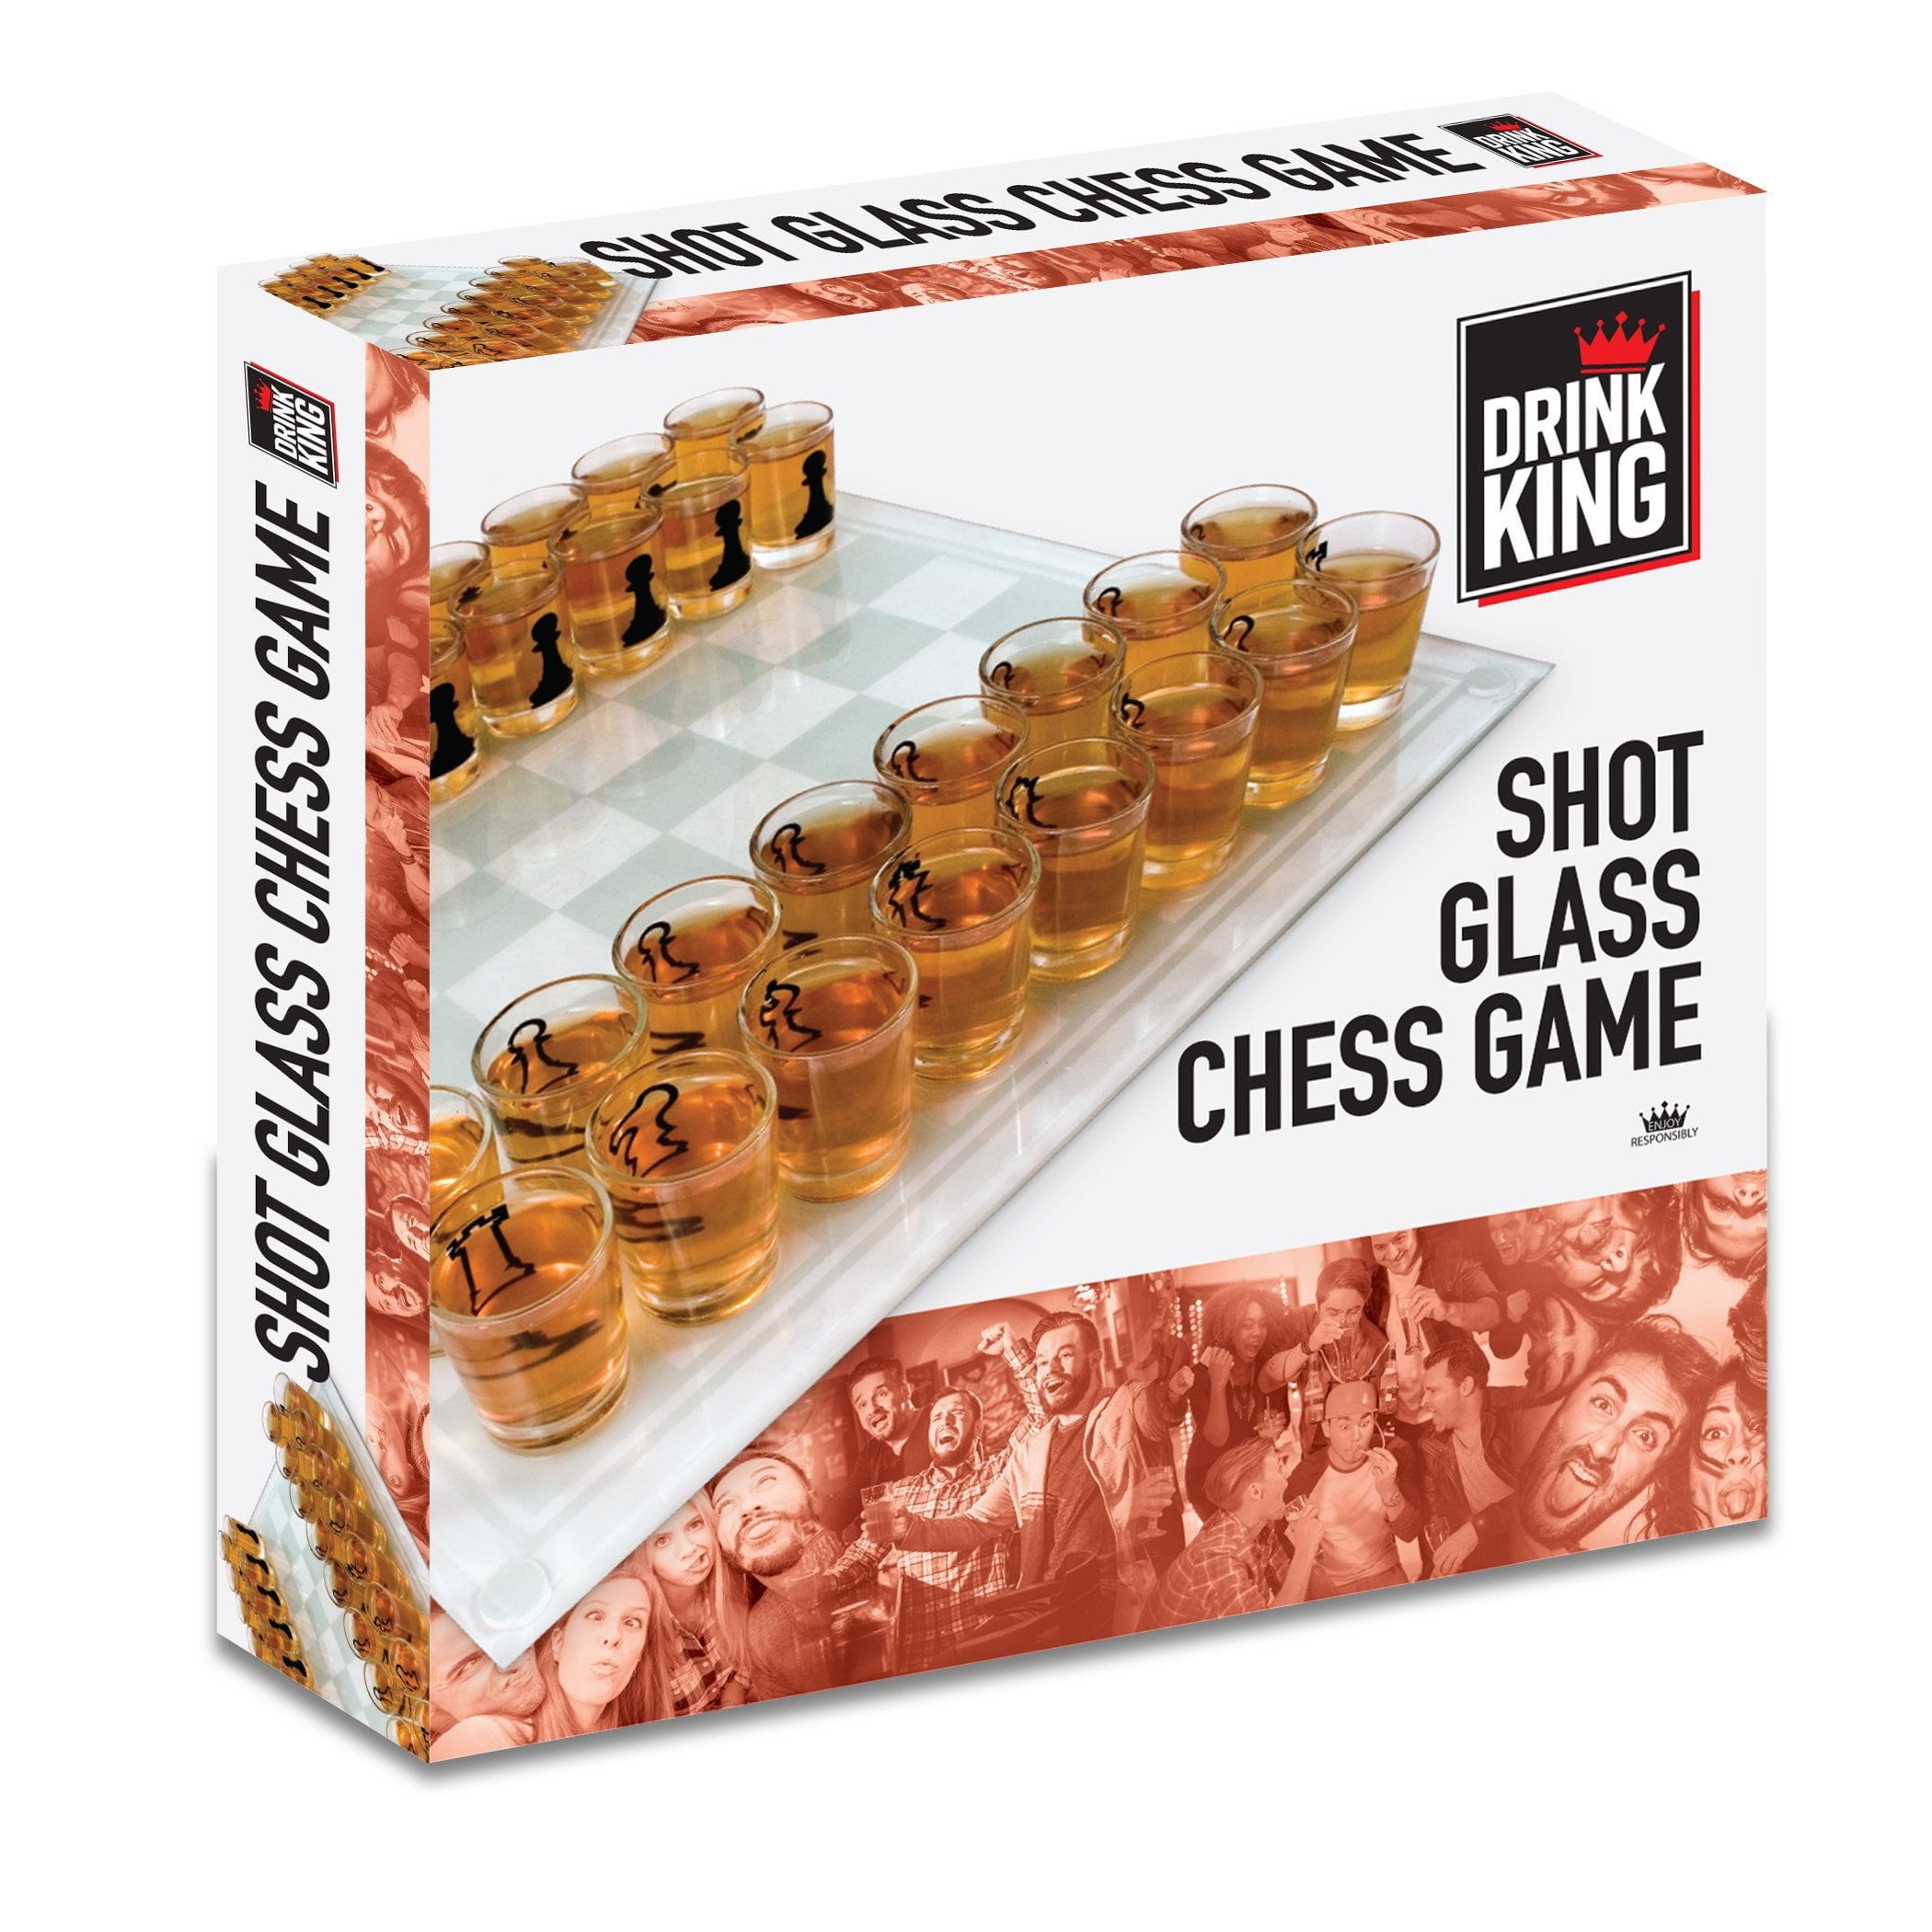 Drink King Shot Glass Chess Game